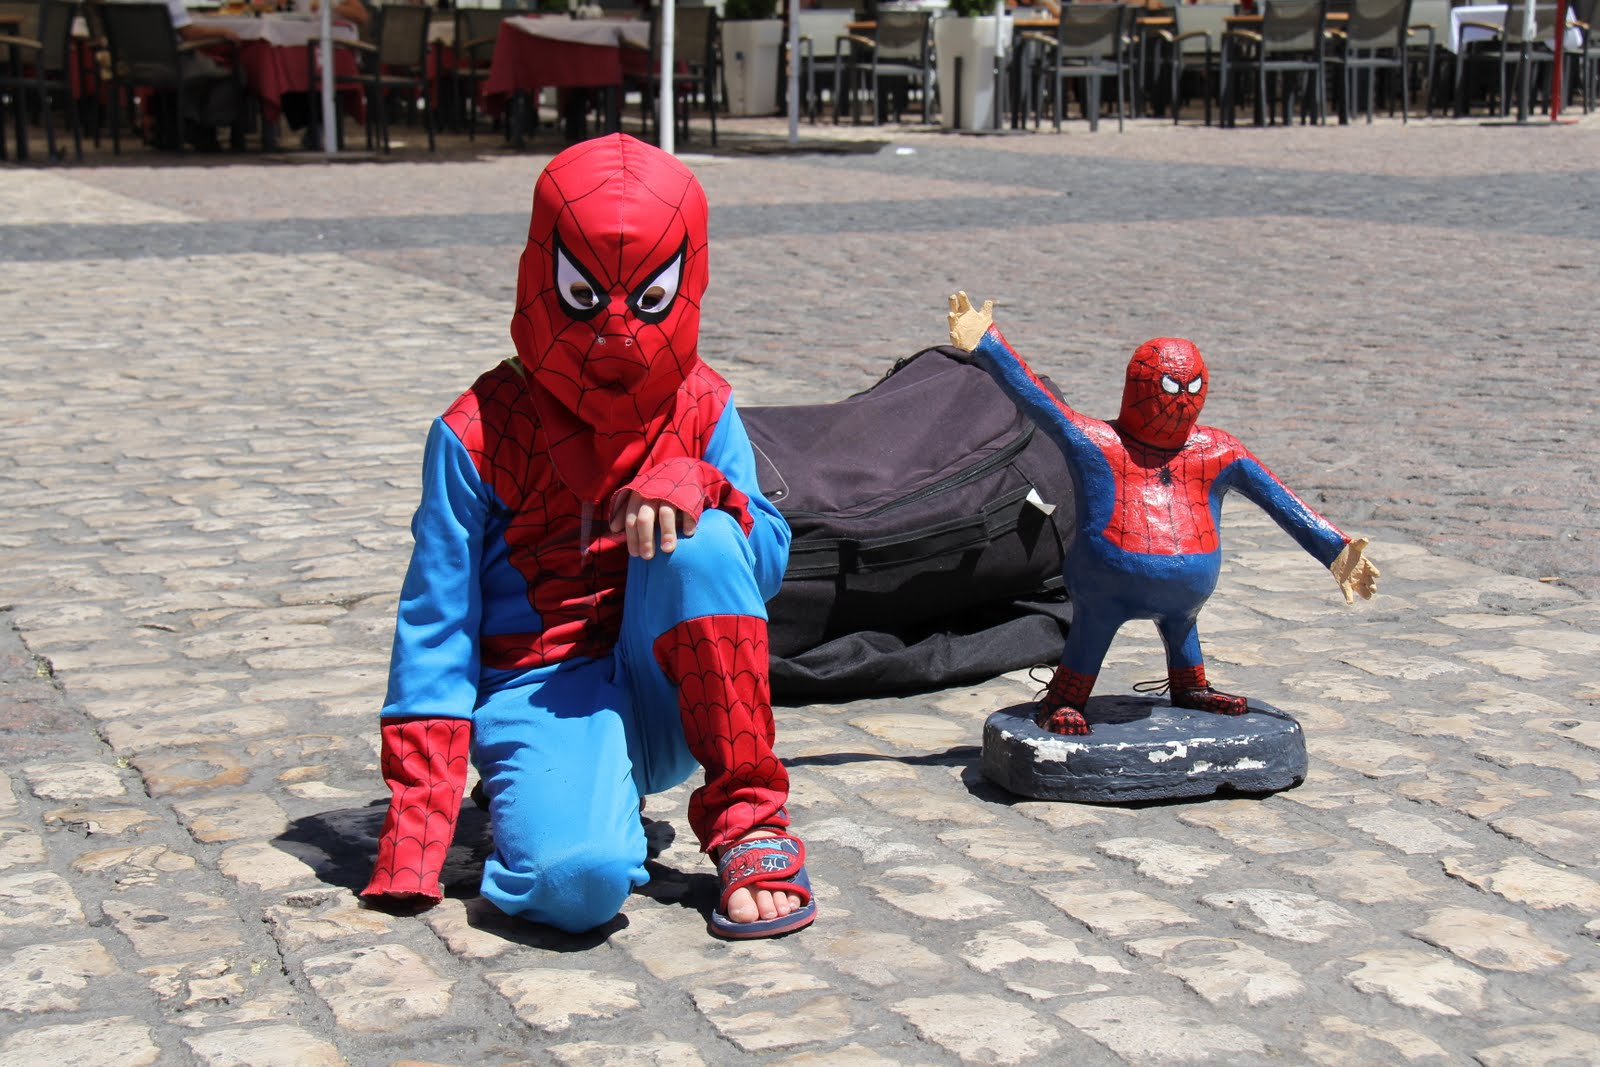 Bye Spiderman! We had SO much fun! & Spiderman Spiderman Does Whatever a Spider Can... - Girl Meets Globe